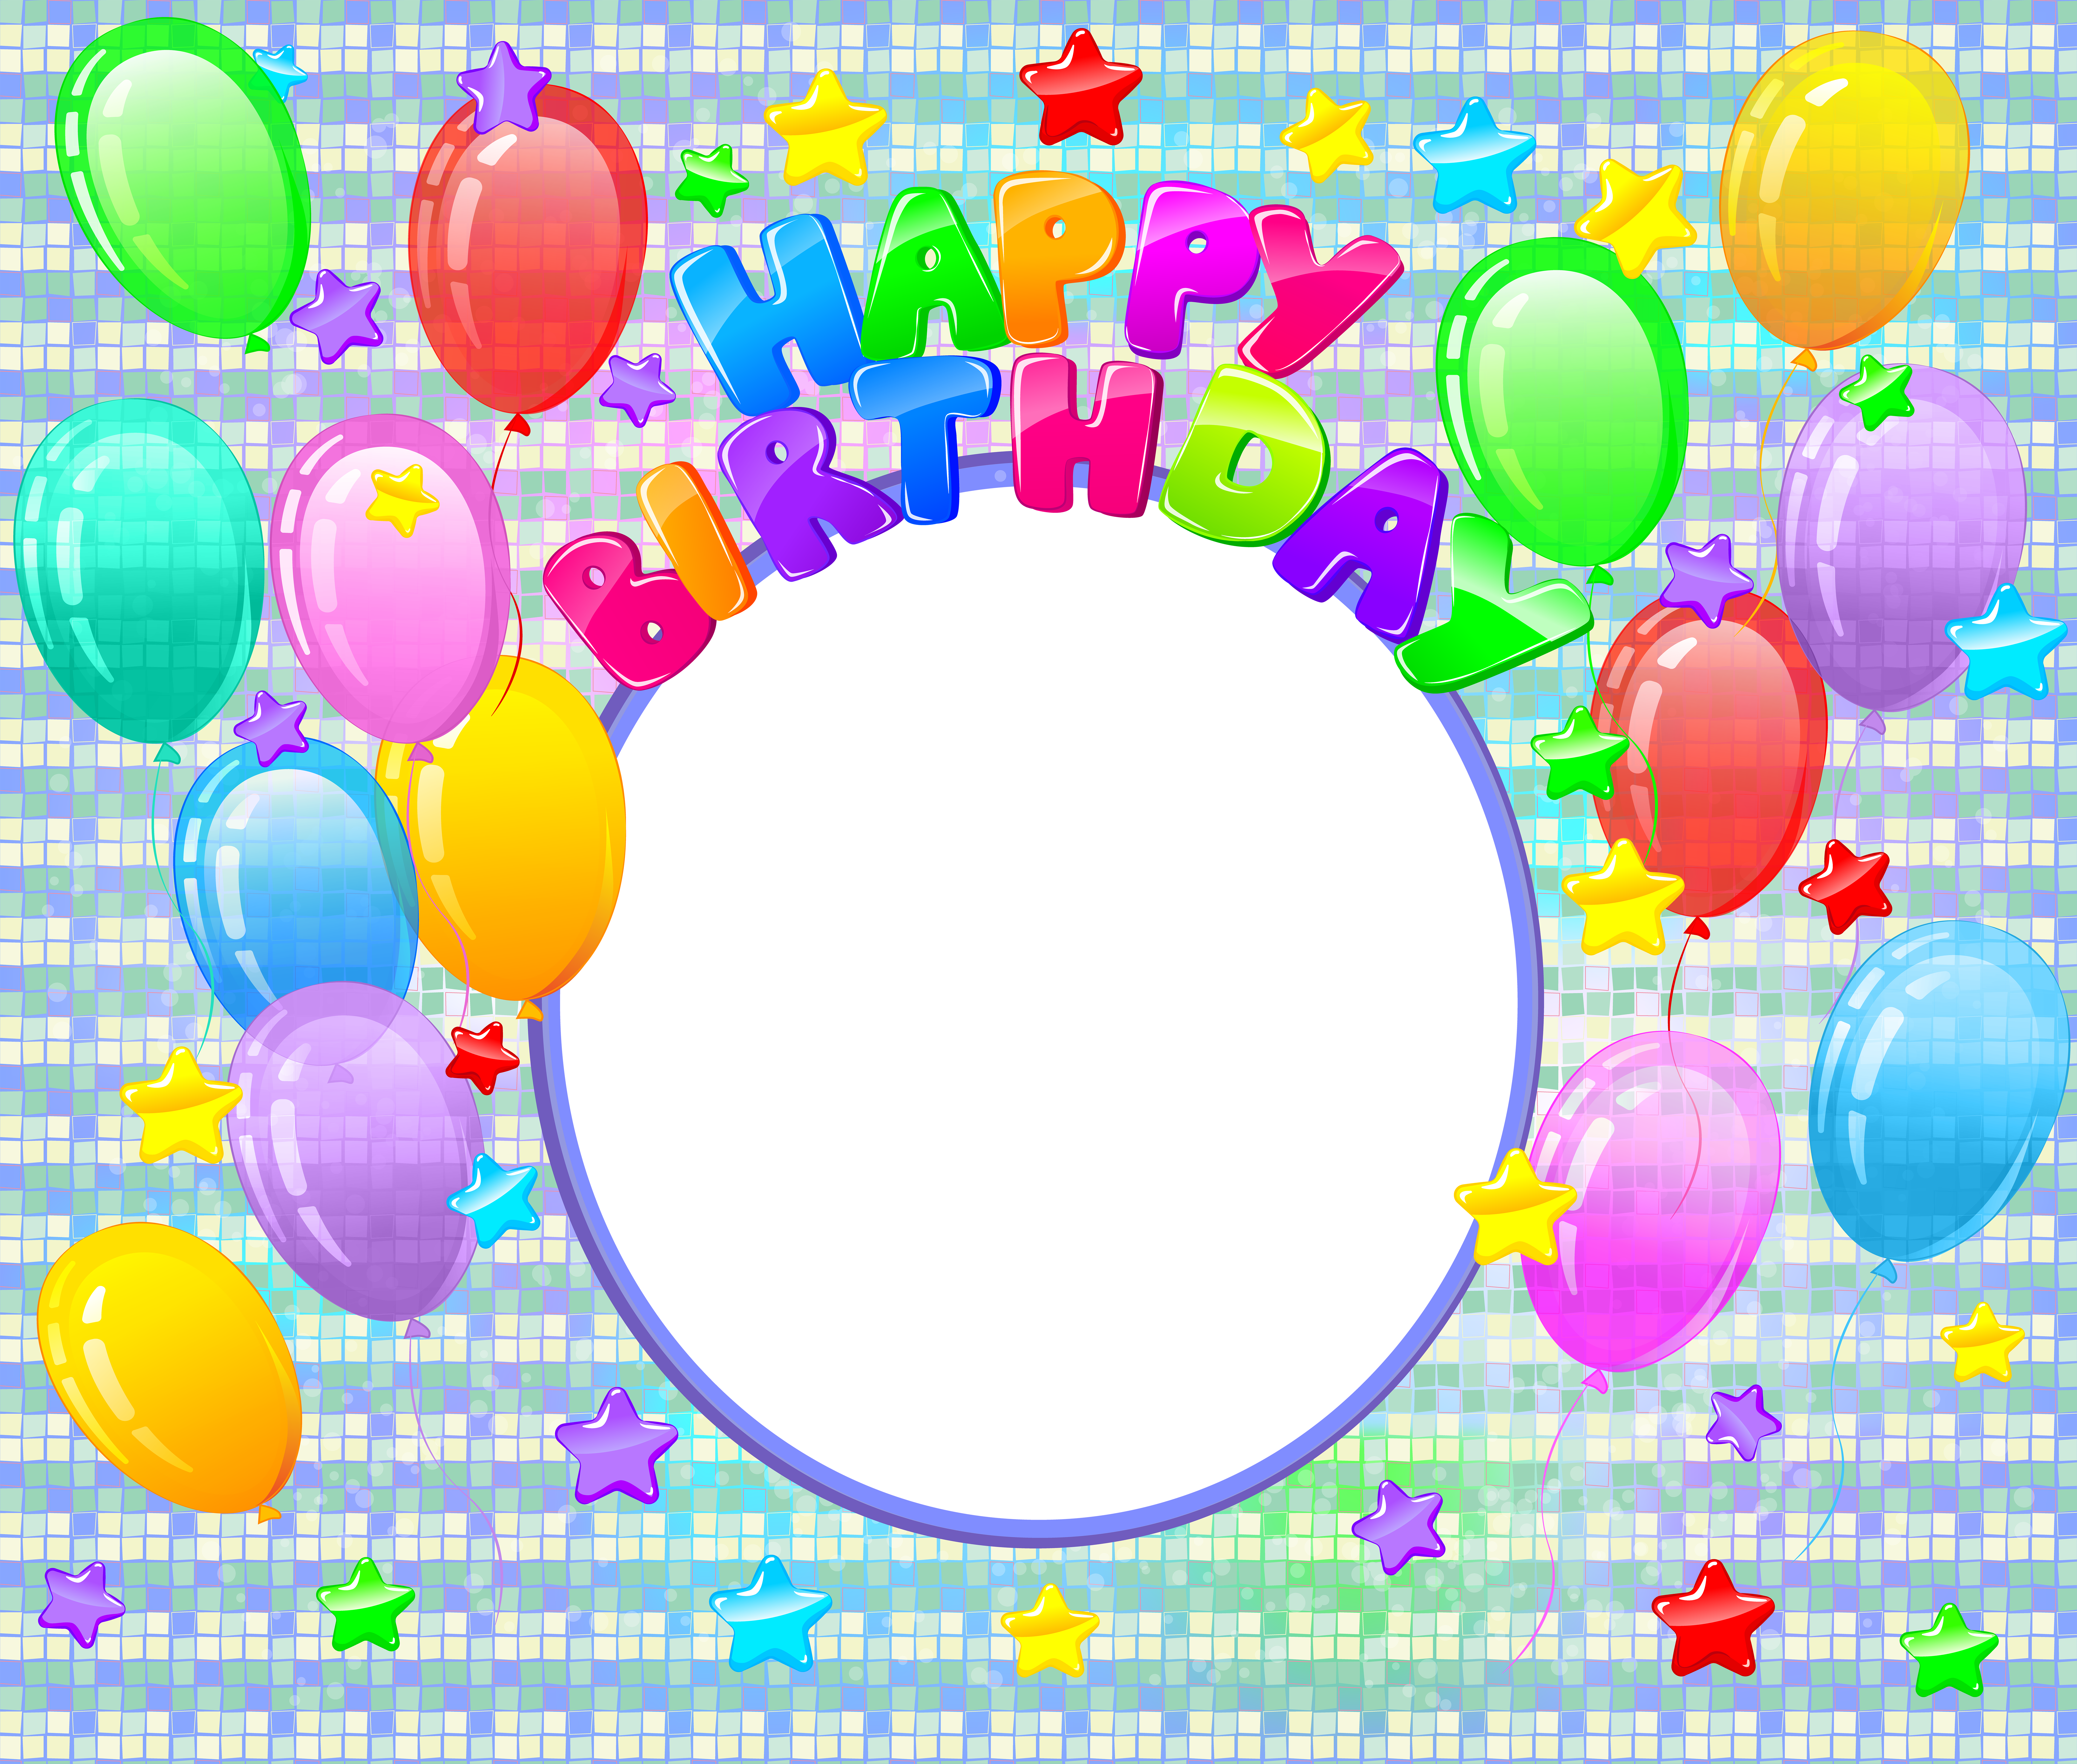 Circle clipart happy birthday. Png transparent photo frame